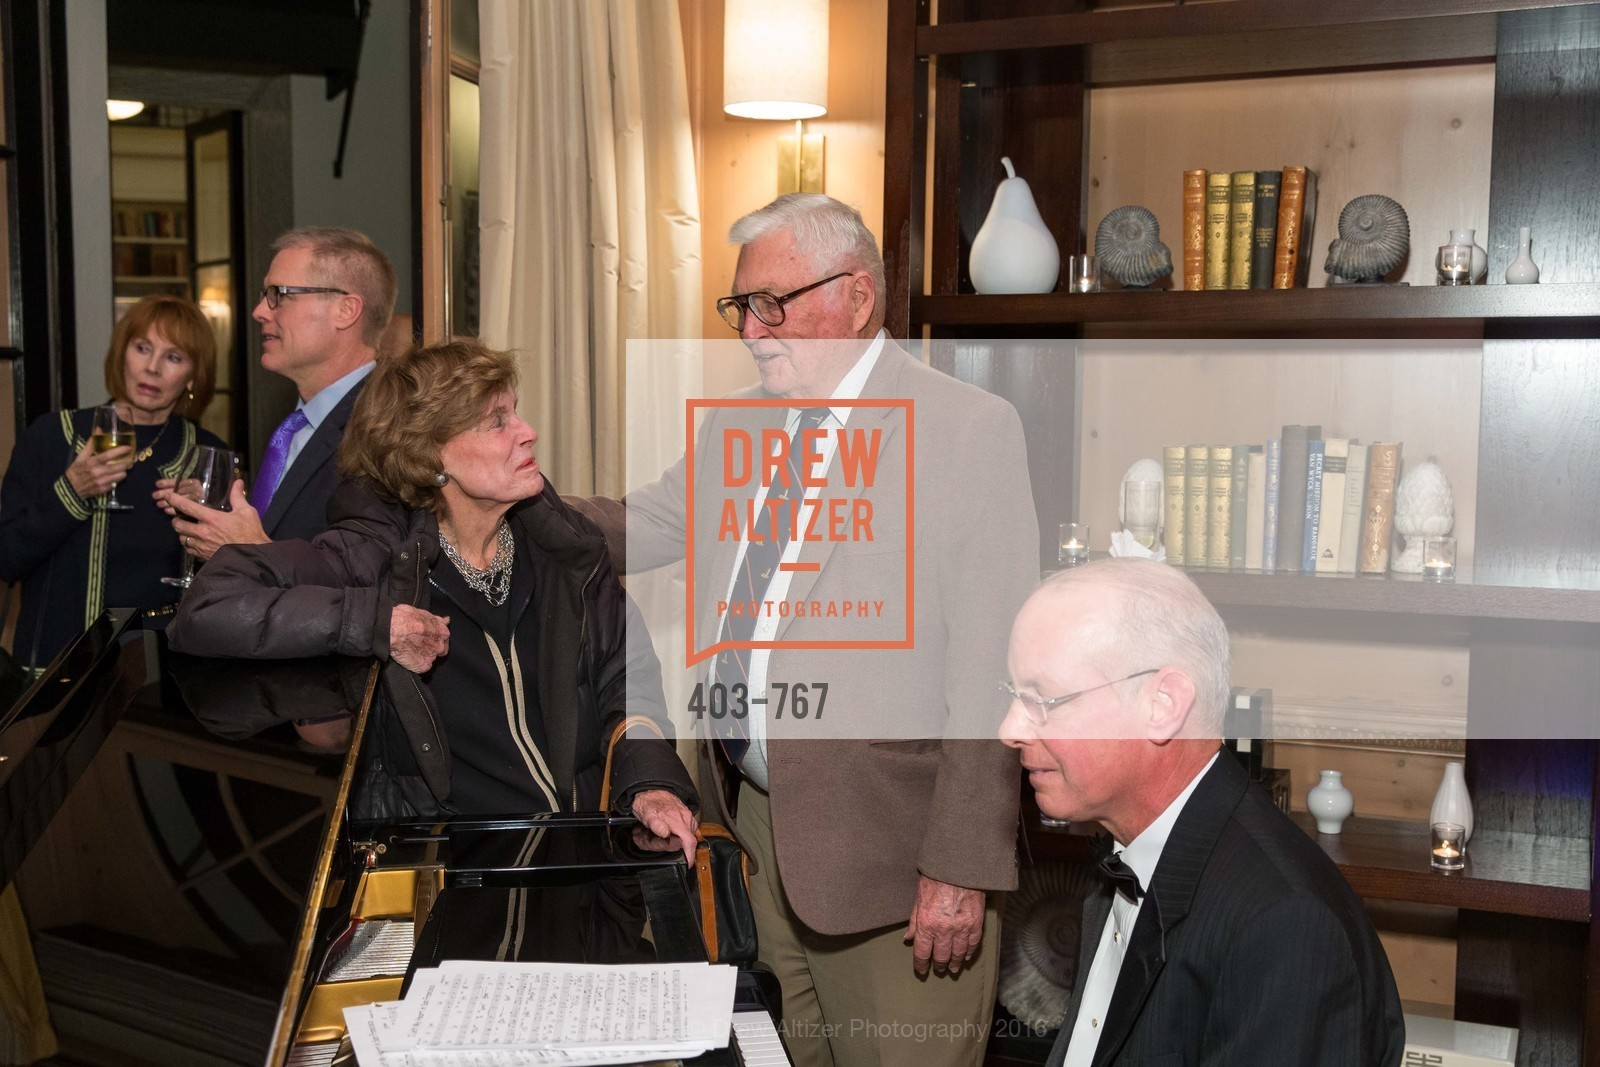 Cathie Johnson, Pitch Johnson, A Special Reception with Tony Bennett, The Fairmont, San Francisco, The Penthouse Suite, January 26th, 2016,Drew Altizer, Drew Altizer Photography, full-service agency, private events, San Francisco photographer, photographer california